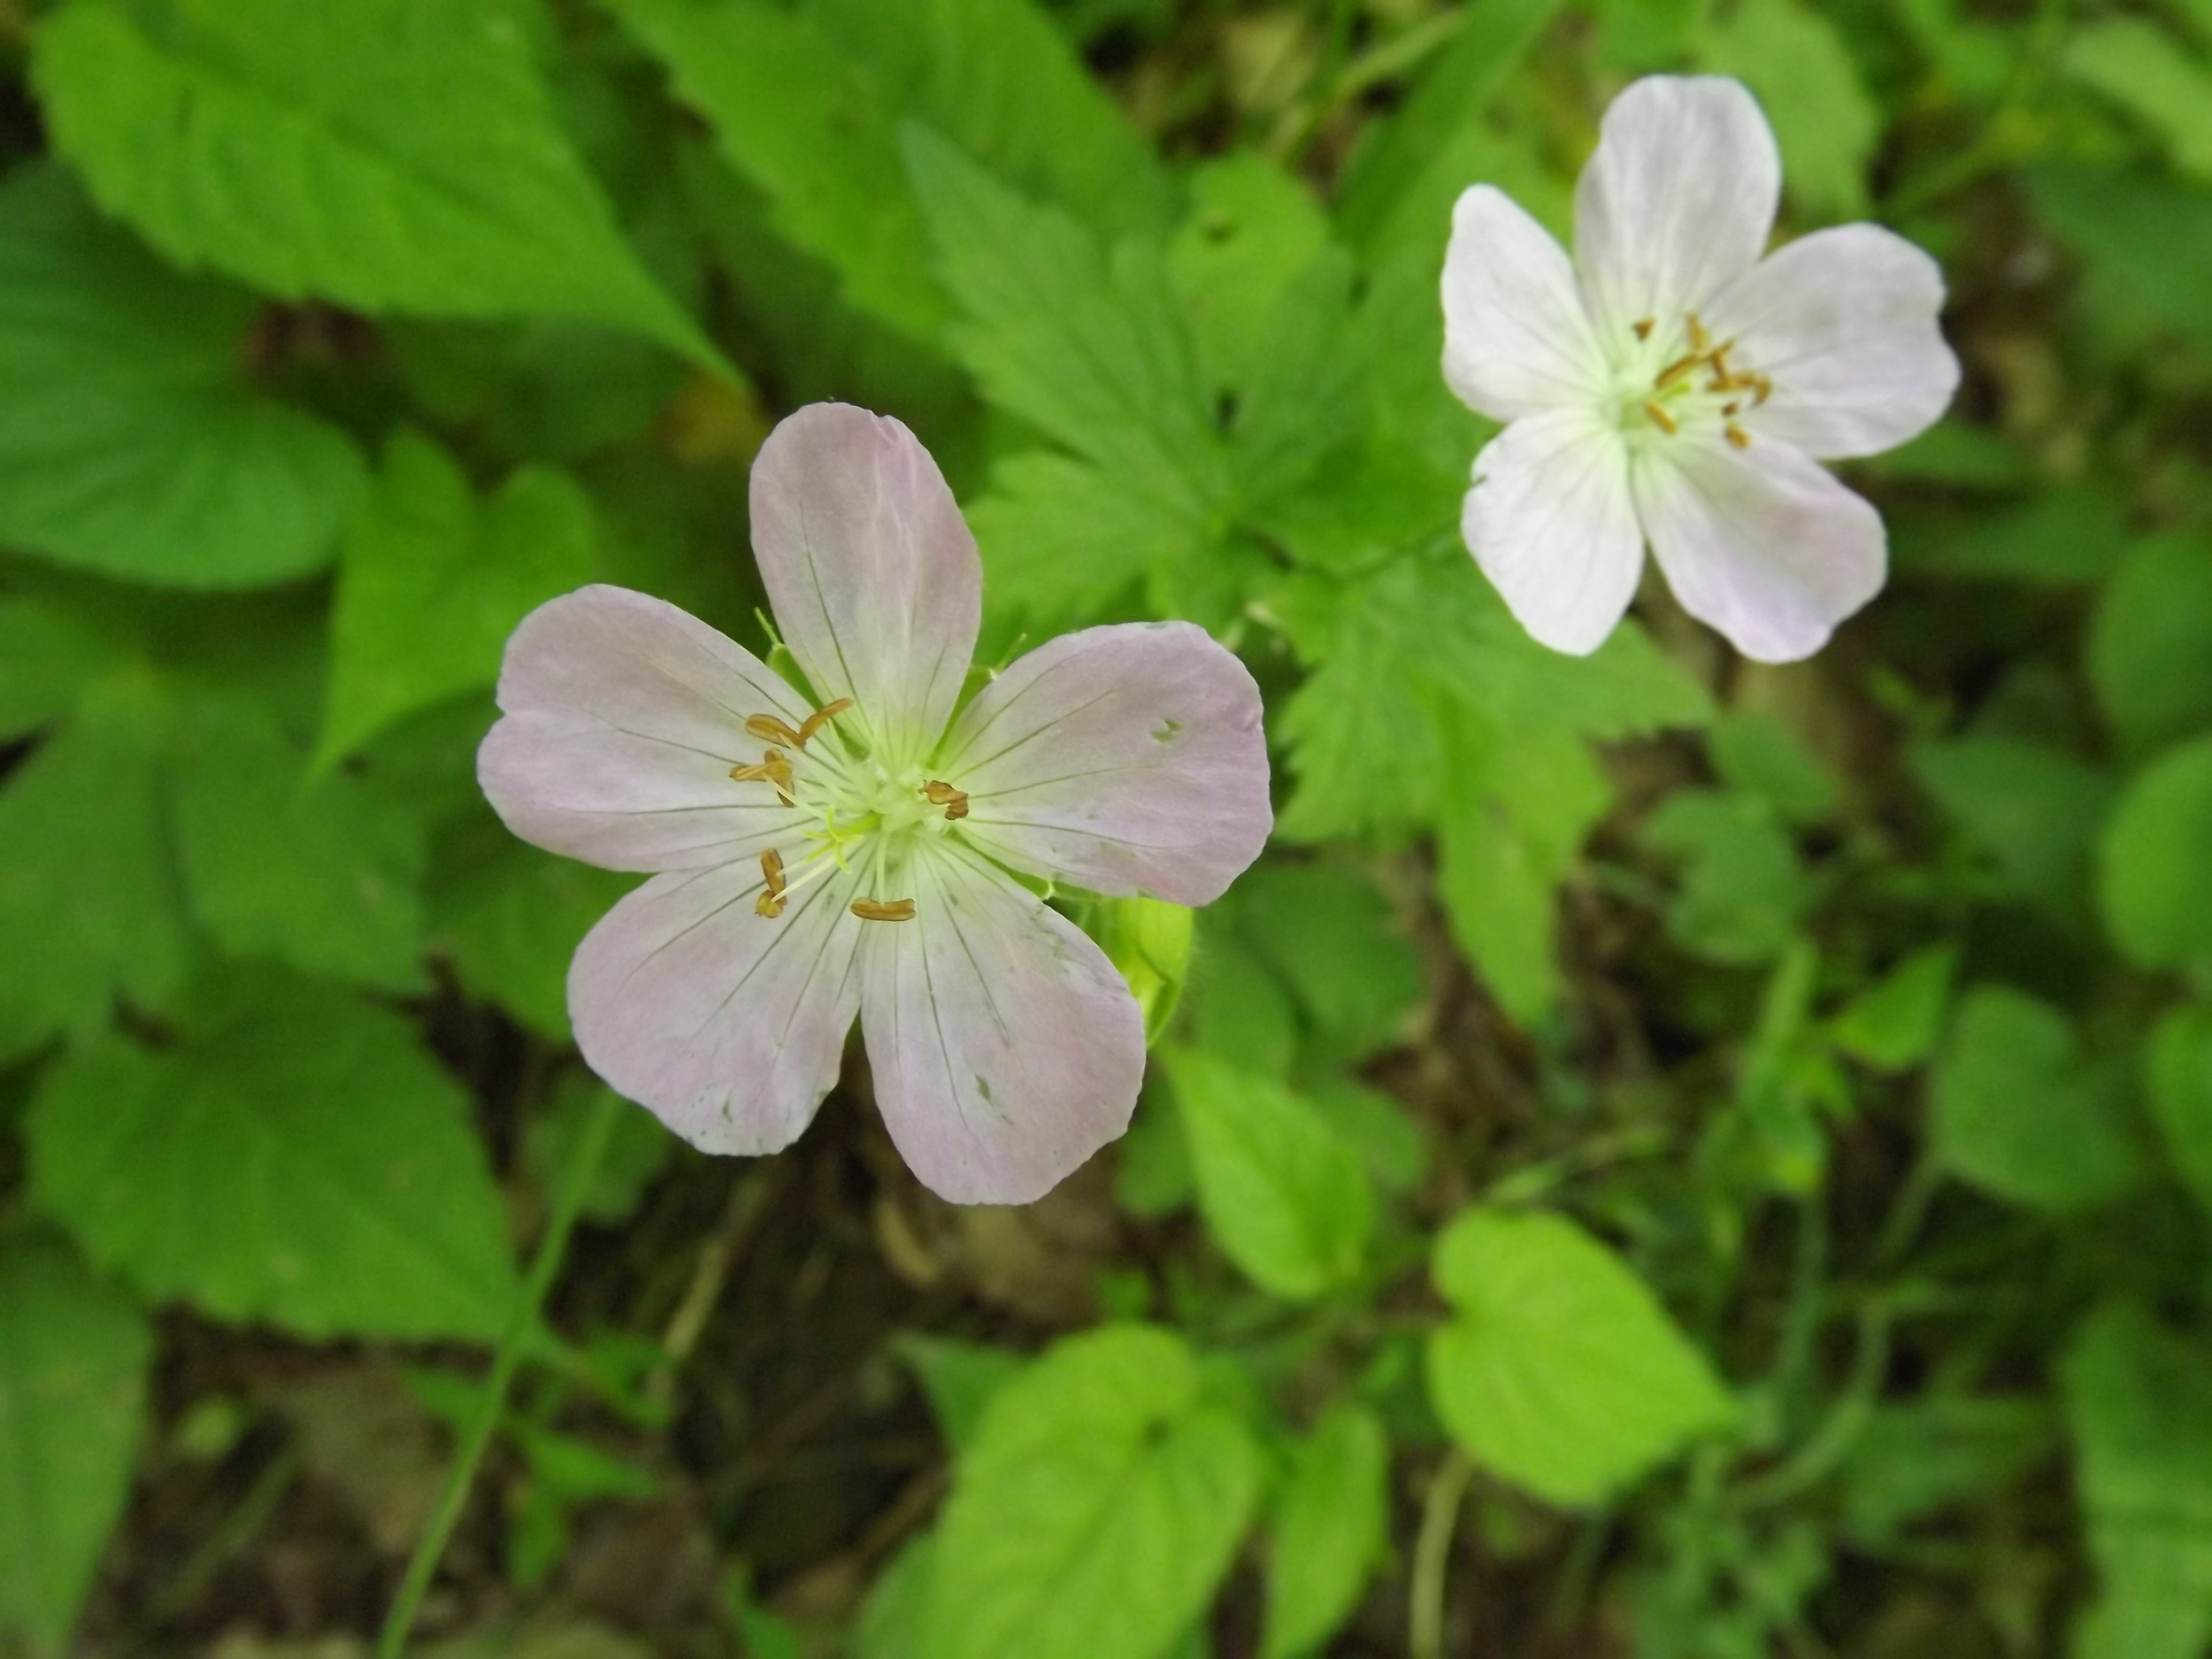 Wild Geranium ( Geranium maculatum ) -  I'm starting to see less and less Wild Geranium in the woods as their season winds down.  But they are one of my favorite wildflowers and one of the very first I identified when I bought my camera to learn about the flora and fauna in the woods.